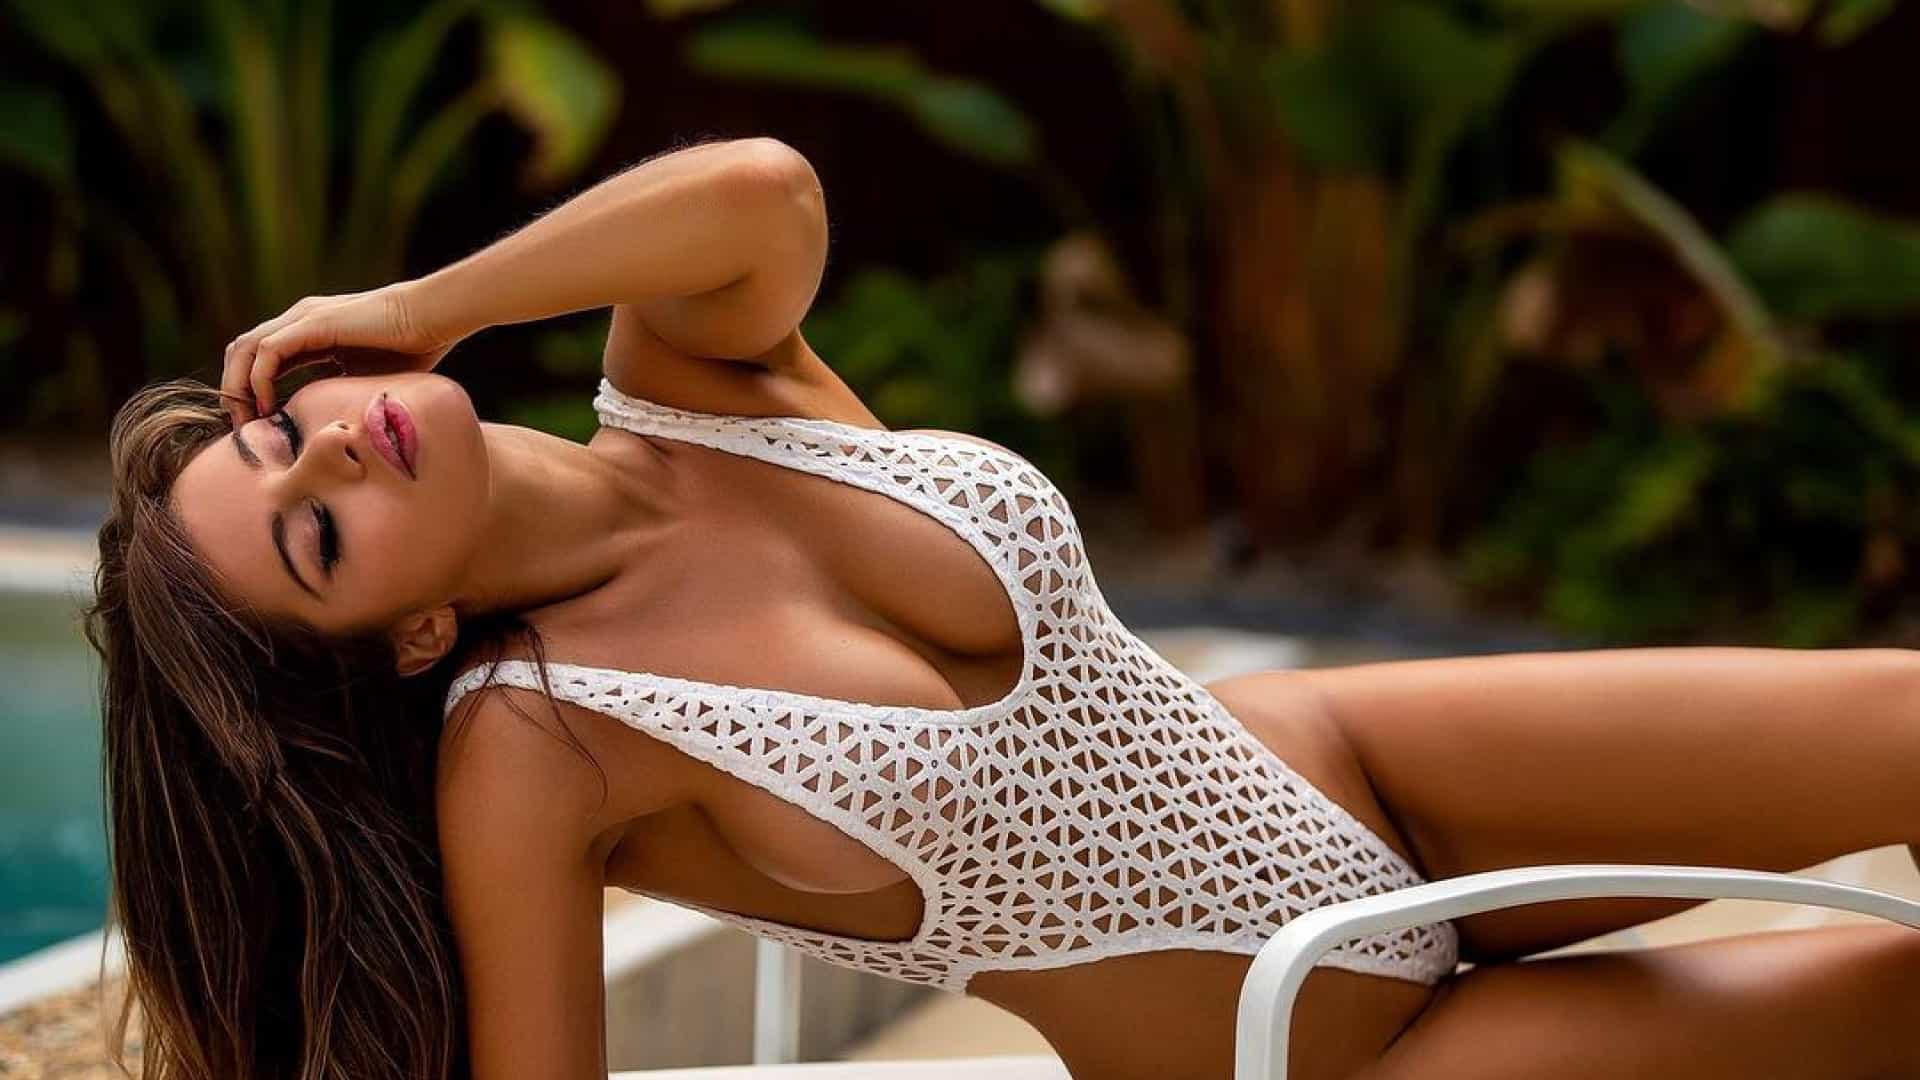 Top Bikini Model Bianca Richards Hot Hd Wallpapers - Top Bikini Model Bianca Richards Hot Hd Wallpapers